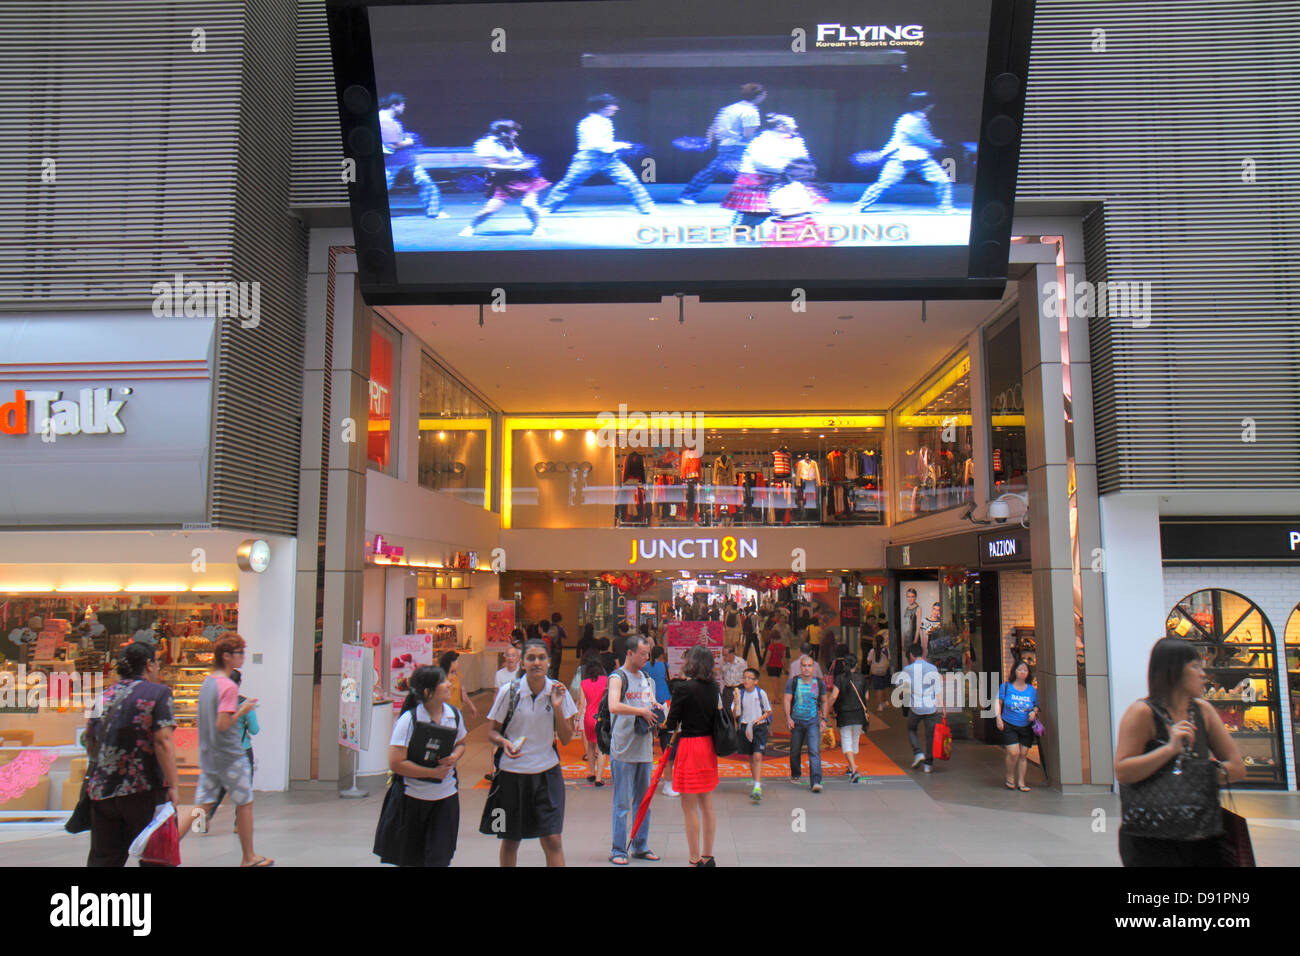 Food Junction opened its first food court at Bishan, Junction 8. One of the first in Singapore to operate and manage food courts with a themed concept, Food Junction serves a mix of local and international cuisine to give customers an array of scrumptious delights.